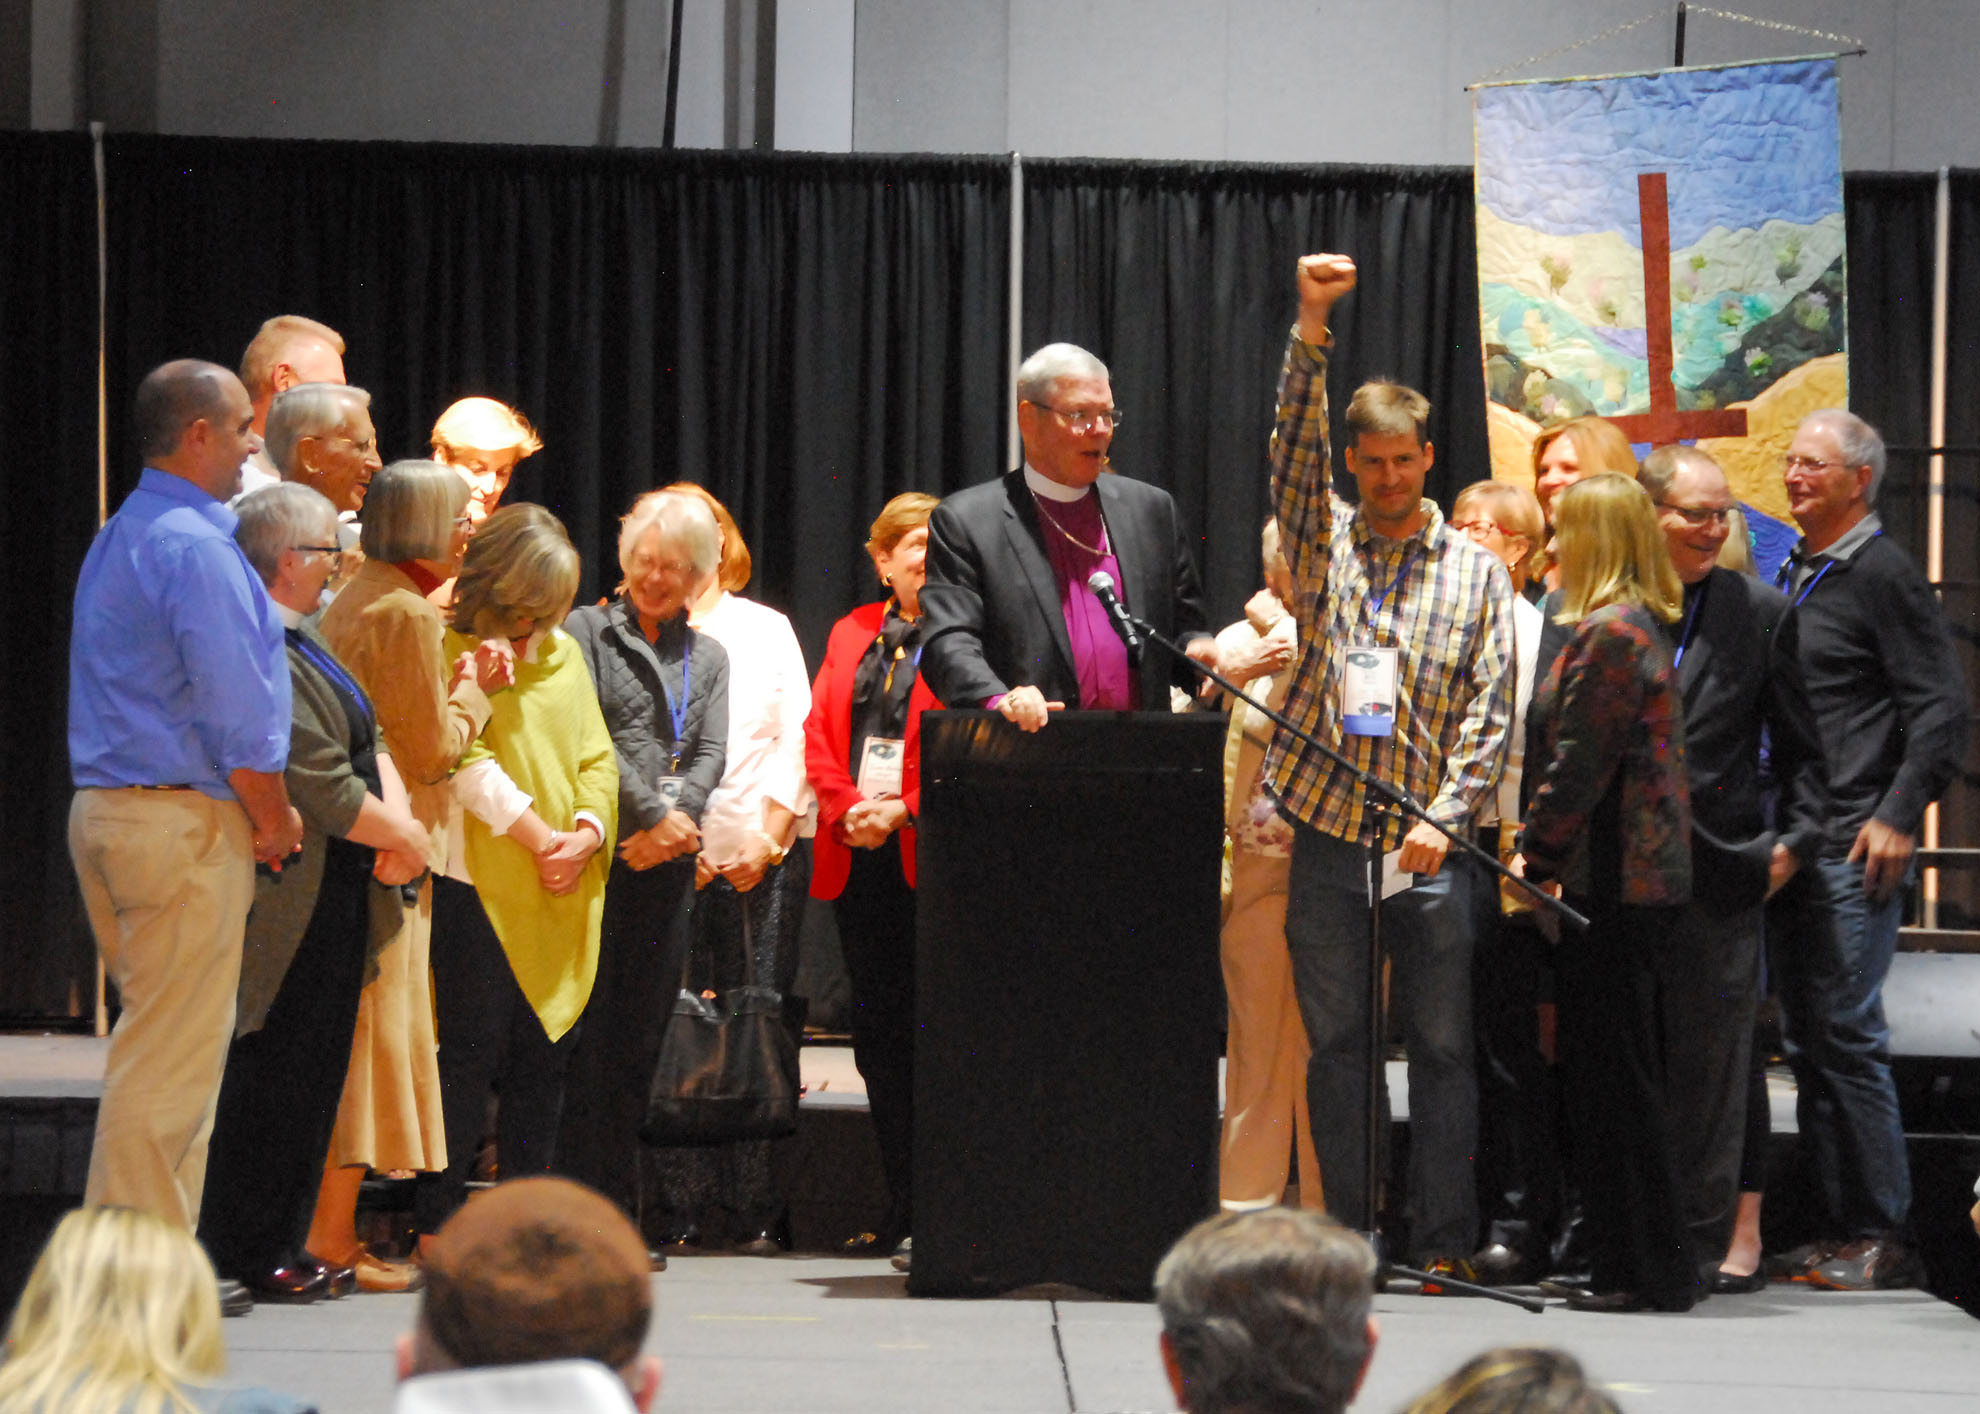 St. Peter in the Valley moves from mission status to parish status and is celebrated at the Annual Convention. Photo courtesy the Rev. Brian Winter